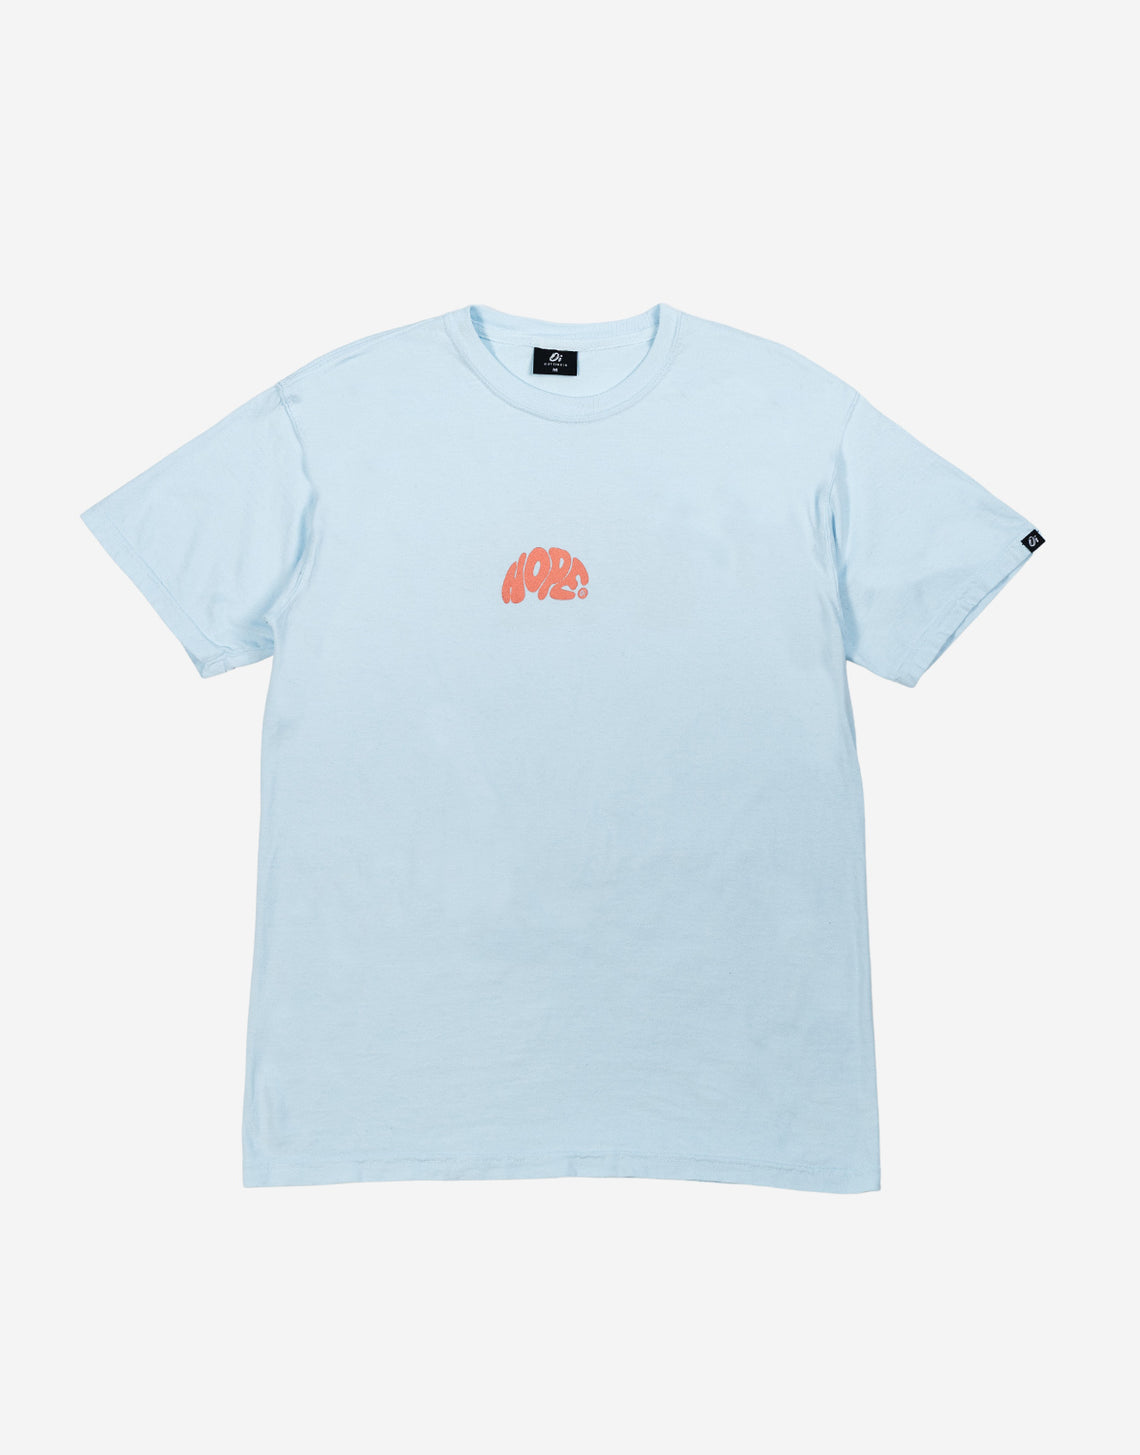 Blue Washed Hope T-Shirt - OutsideIn